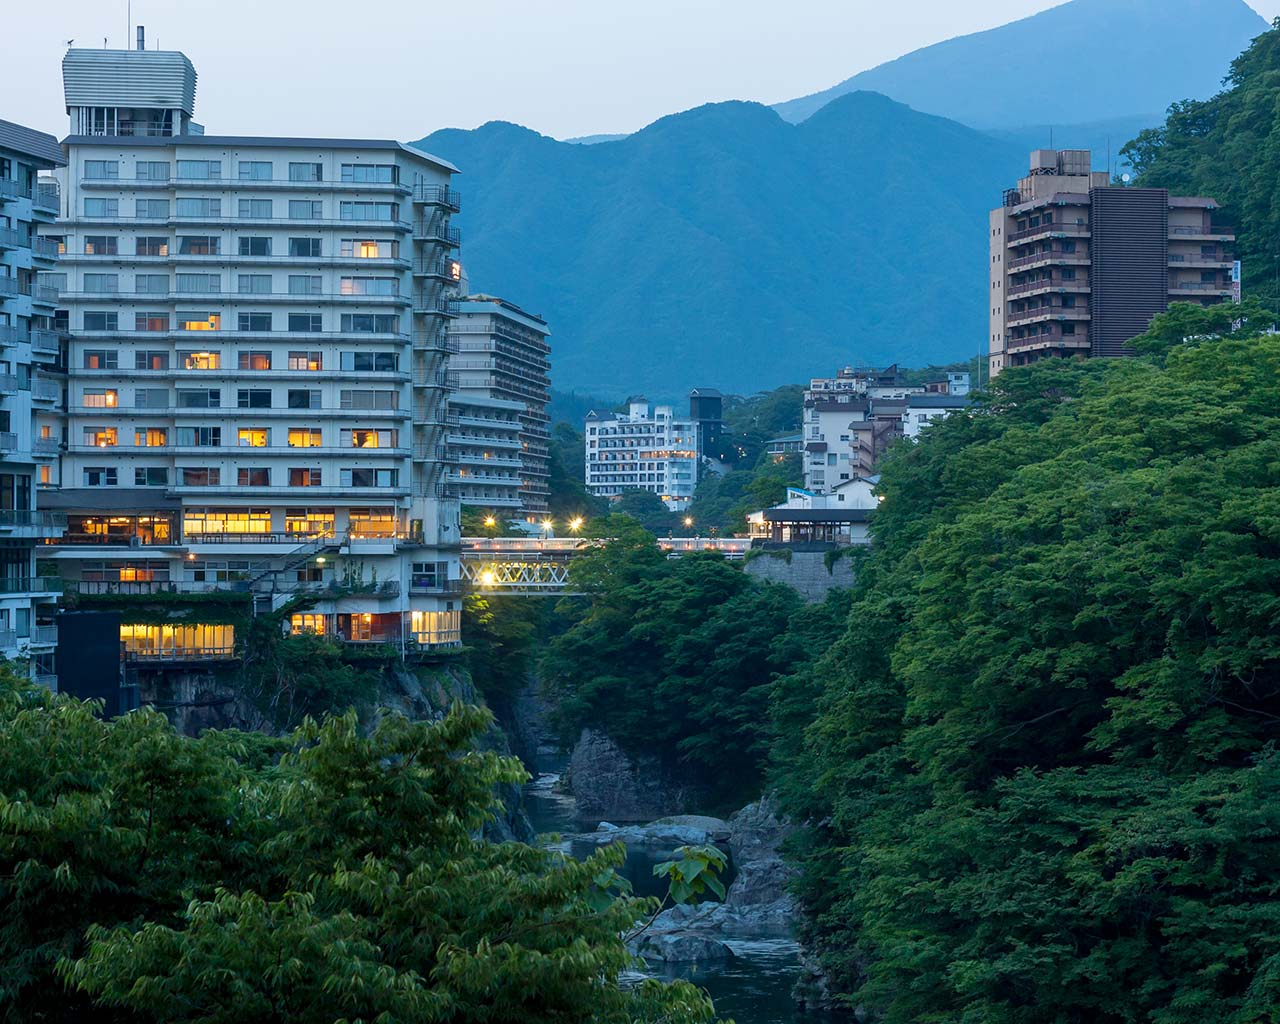 Kinugawa onsen valley and hotels